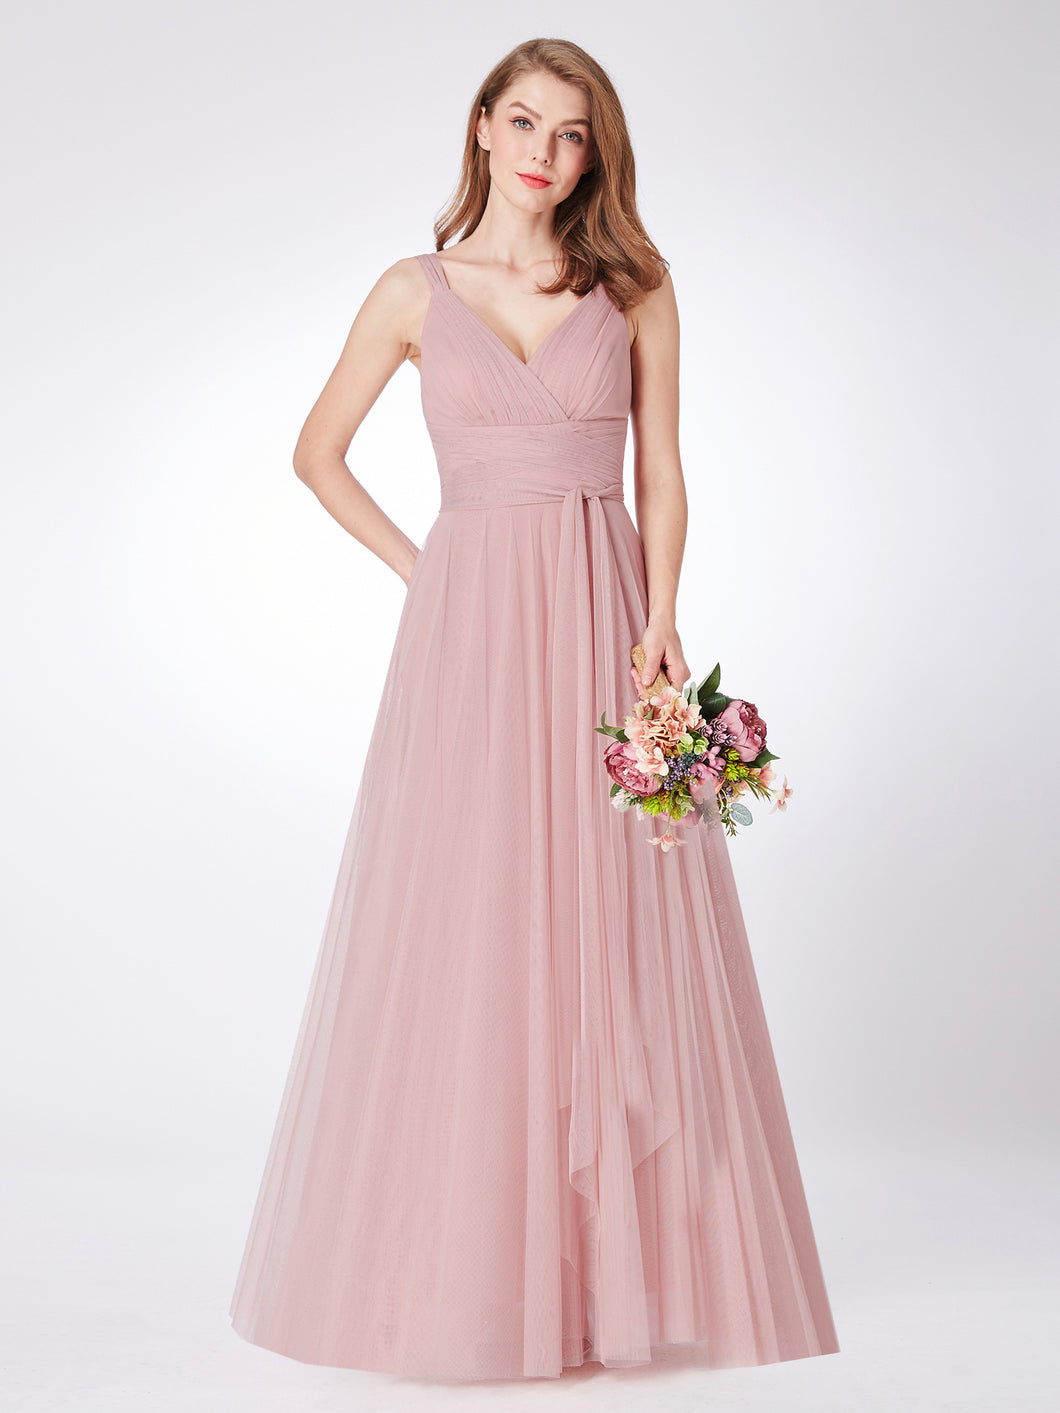 Blush Hues tulle Bridesmaid/Prom Dress - Size 8